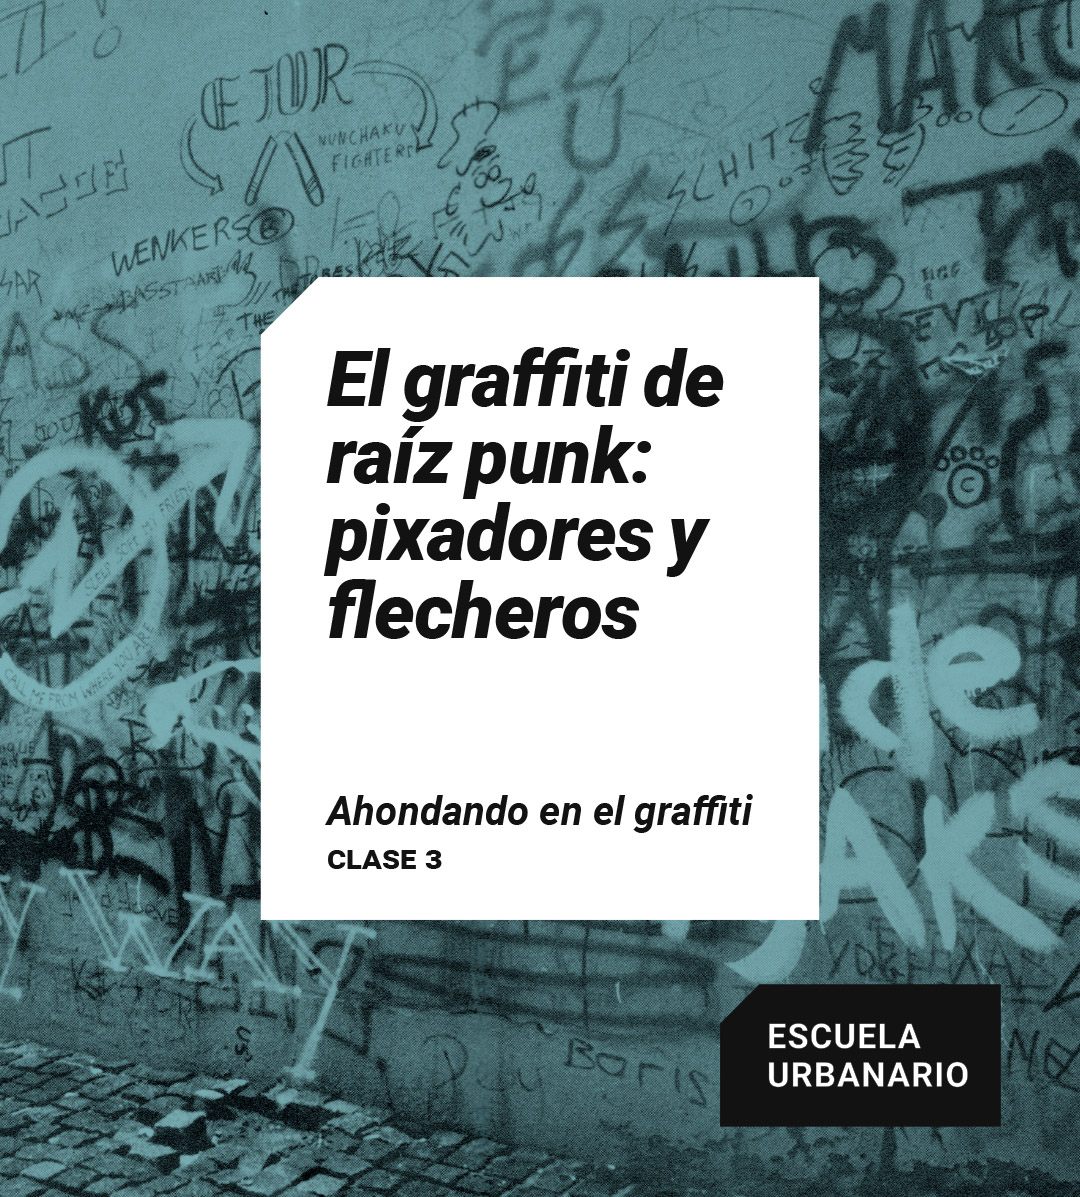 El graffiti de raiz punk